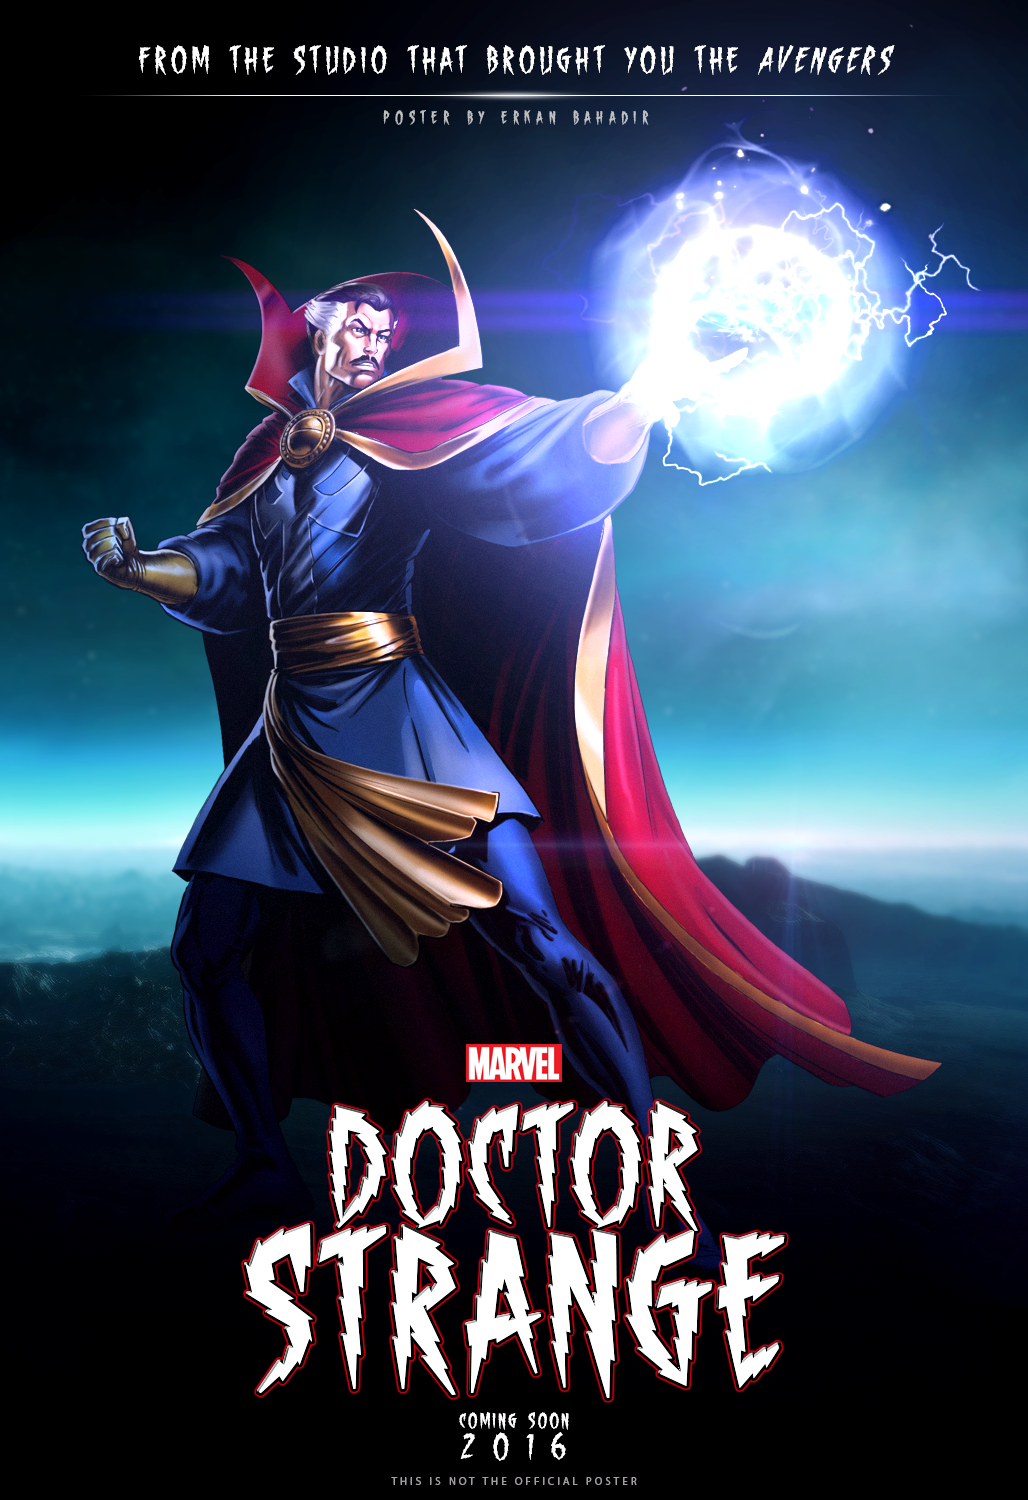 DOCTOR STRANGE 2016 MOVIE FANMADE POSTER by erkanbahadir23 on